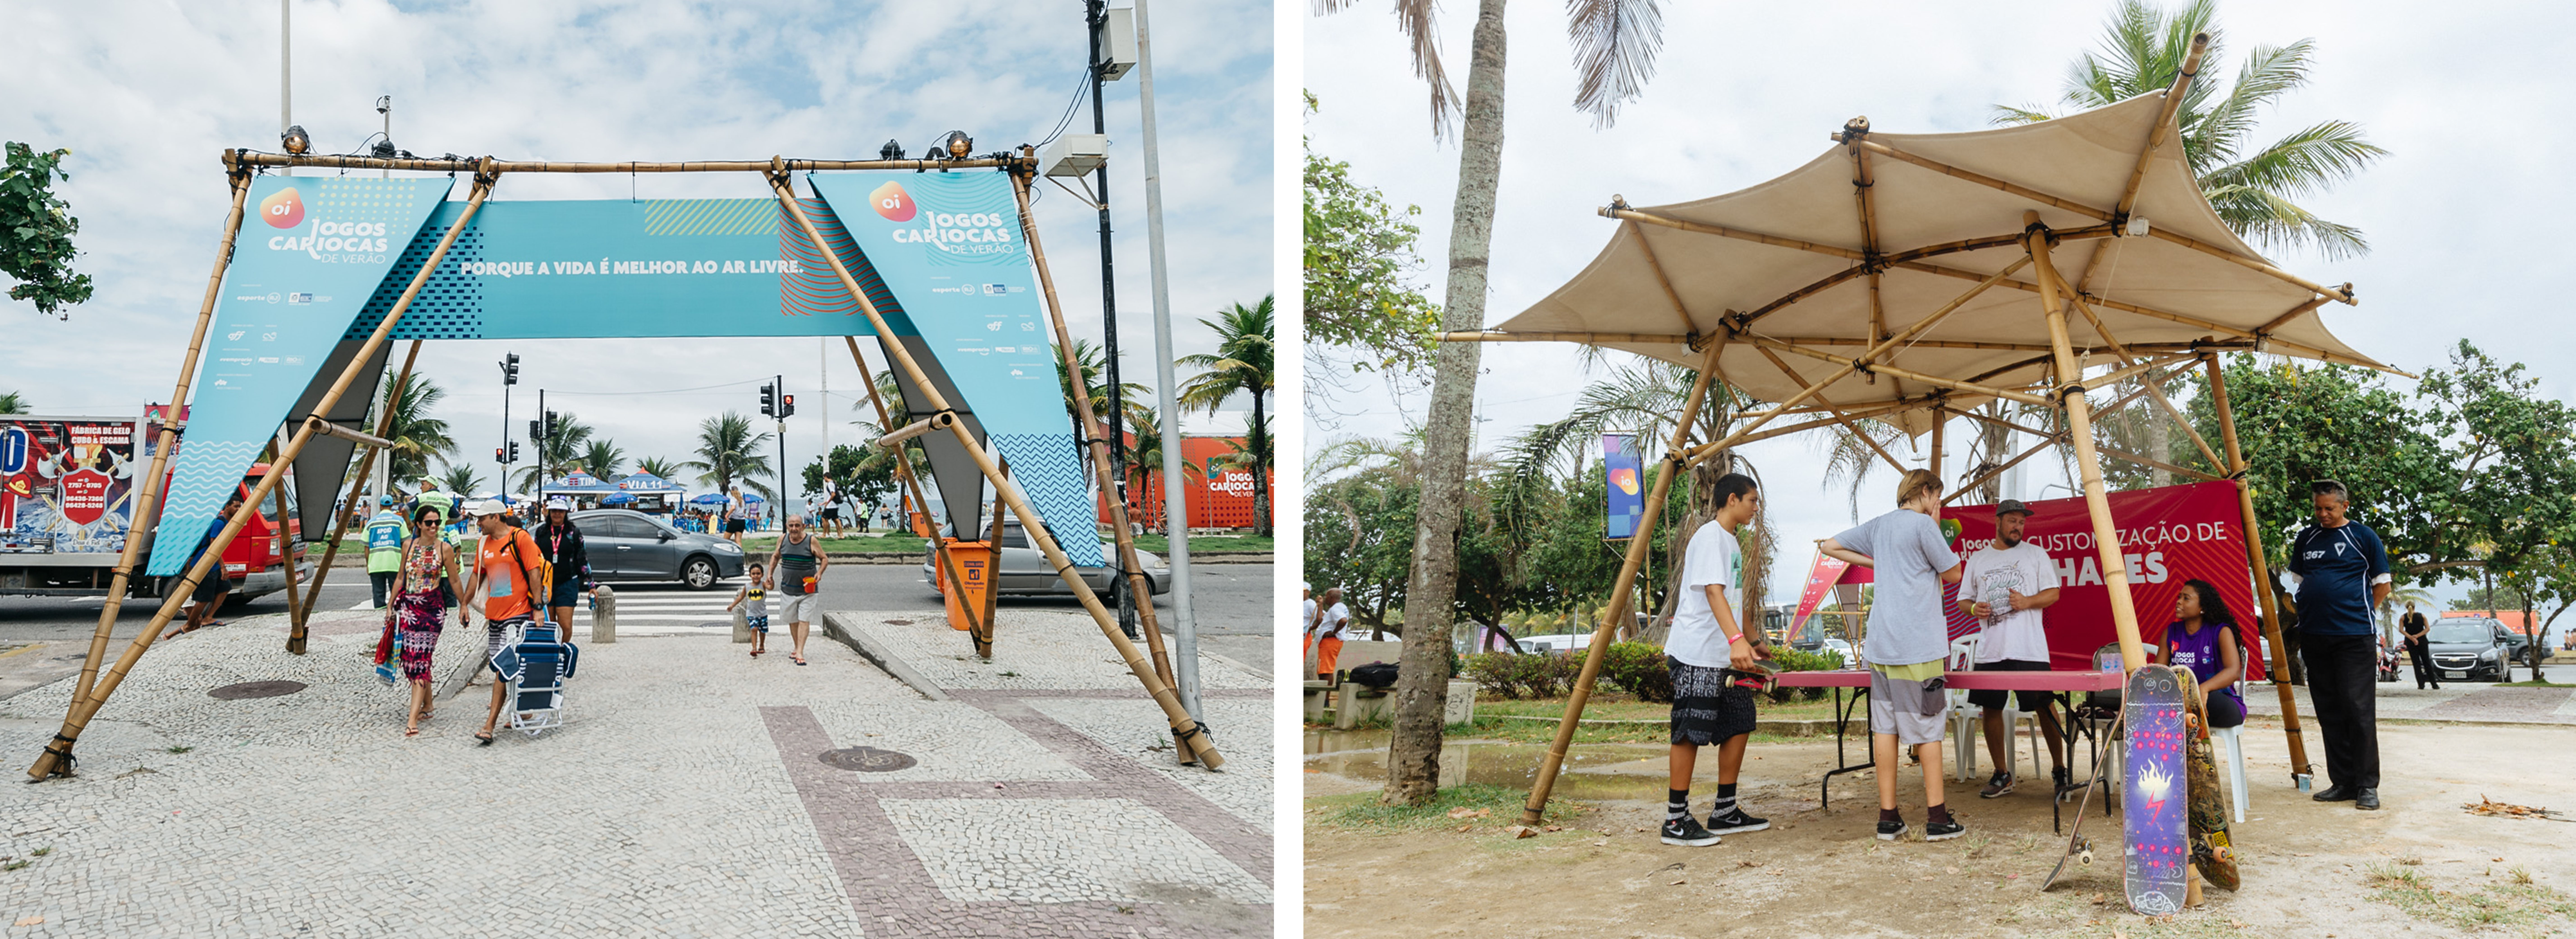 Bamboo-structures-Rio-Summer-Games-1.jpg